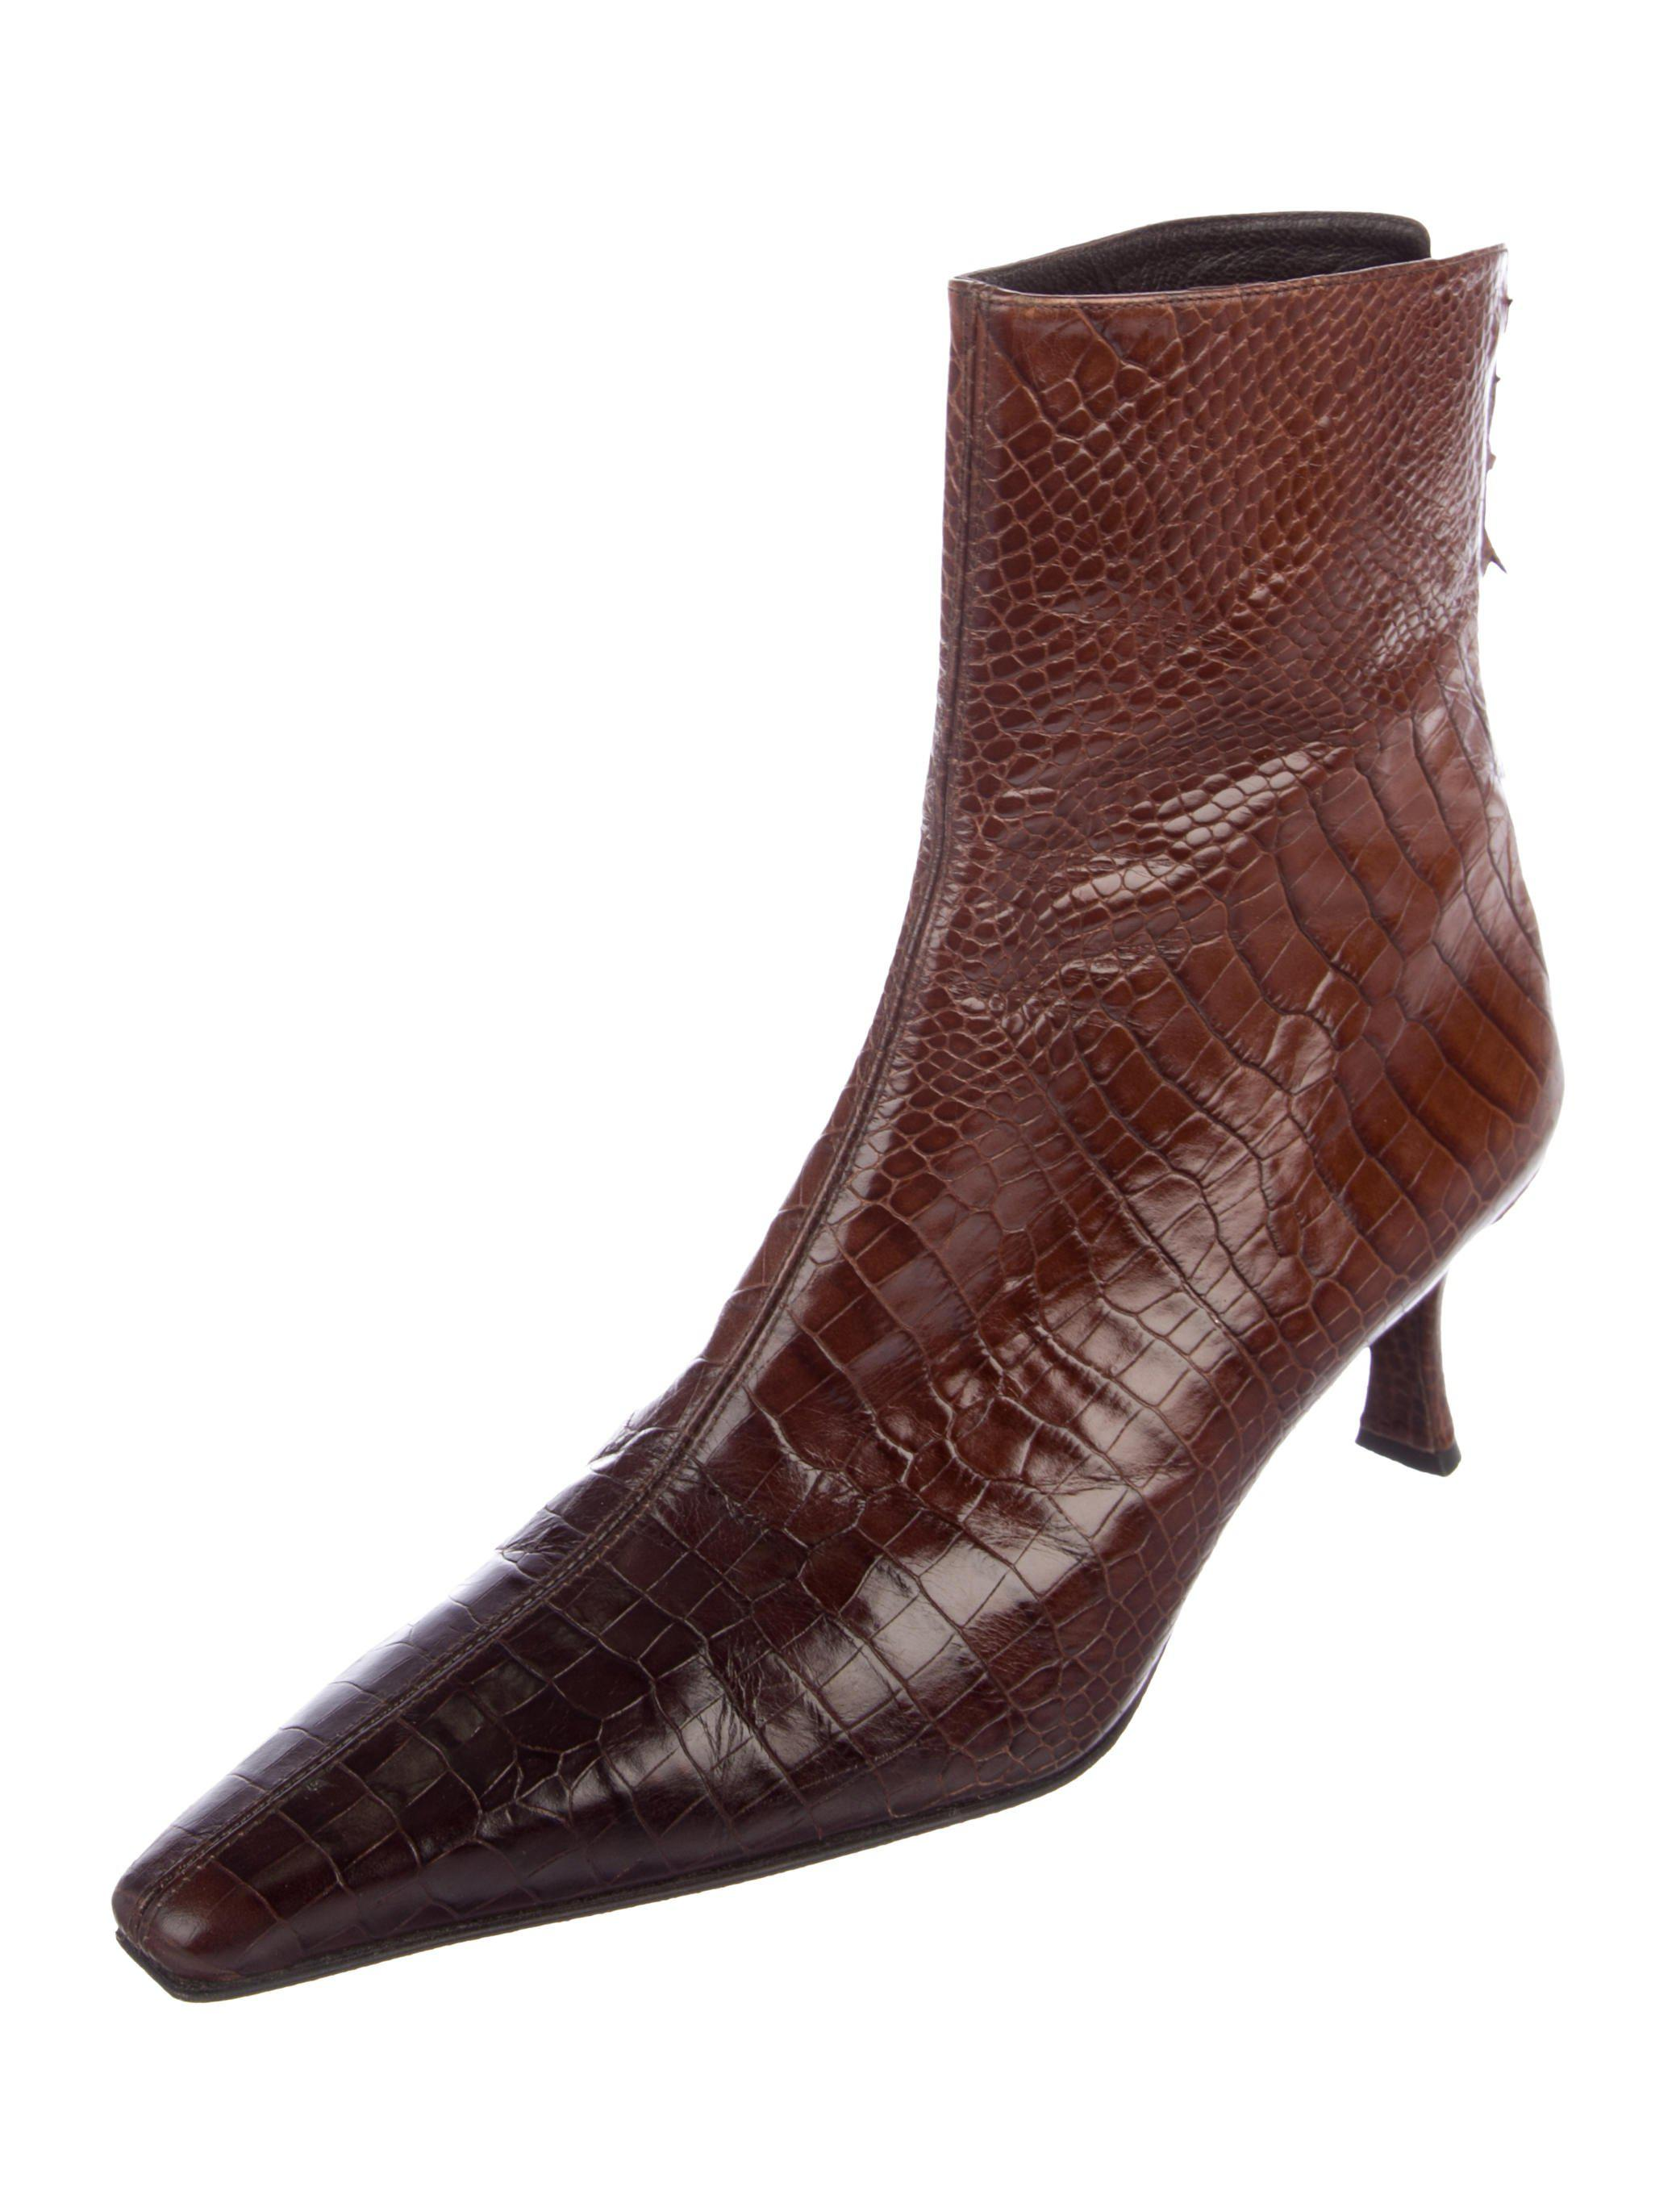 Stuart Weitzman Crocodiles Square-Toe Boots sale lowest price perfect cheap price buy cheap amazing price wG8tad7hCf